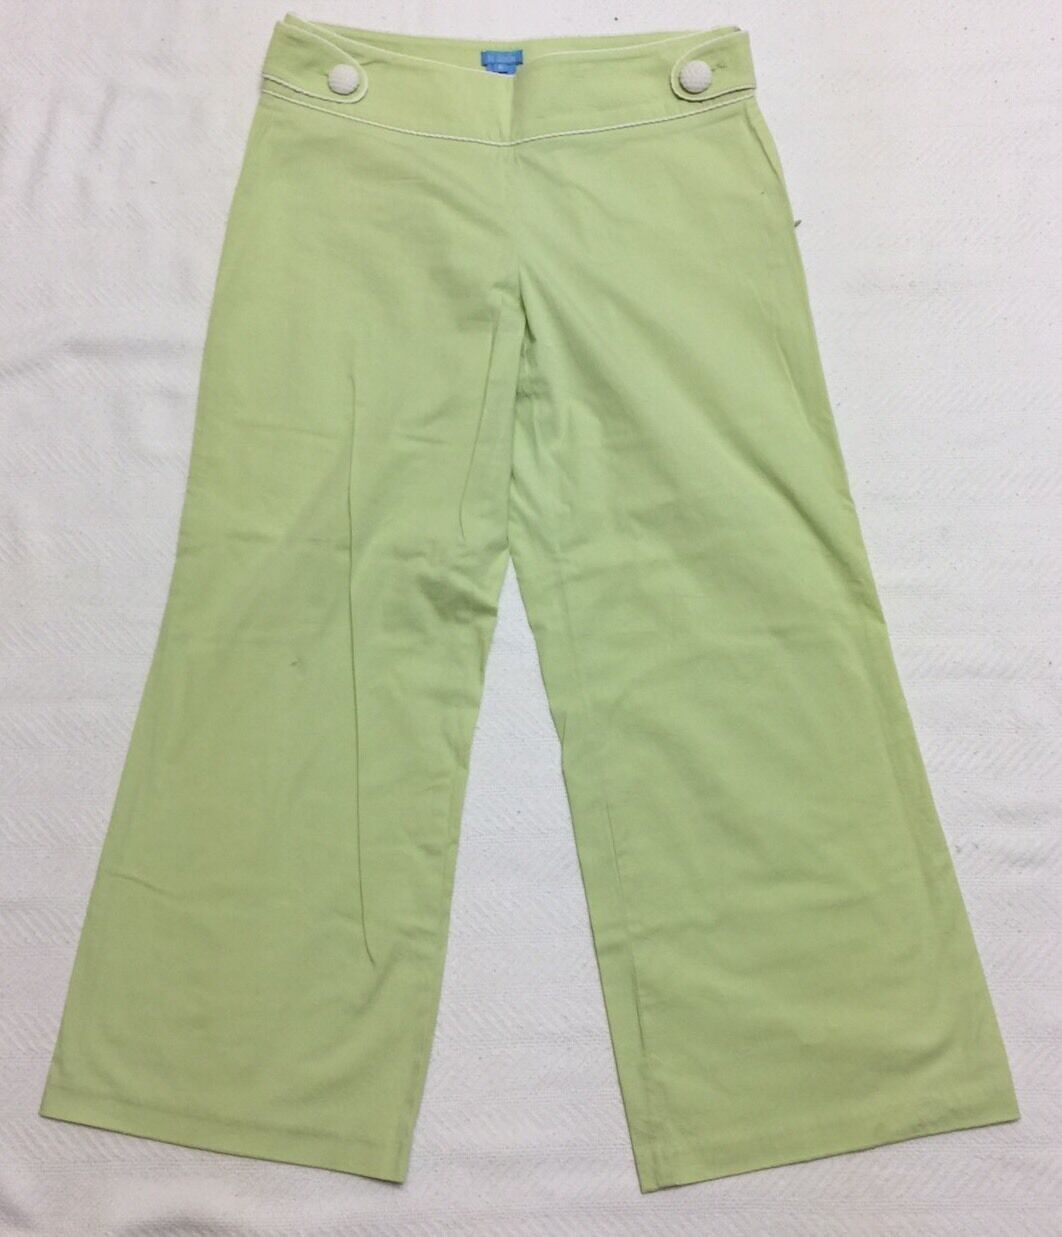 Light Green Capri Length Pants With White Piping And Quilted Buttons Sz 6 EEUC